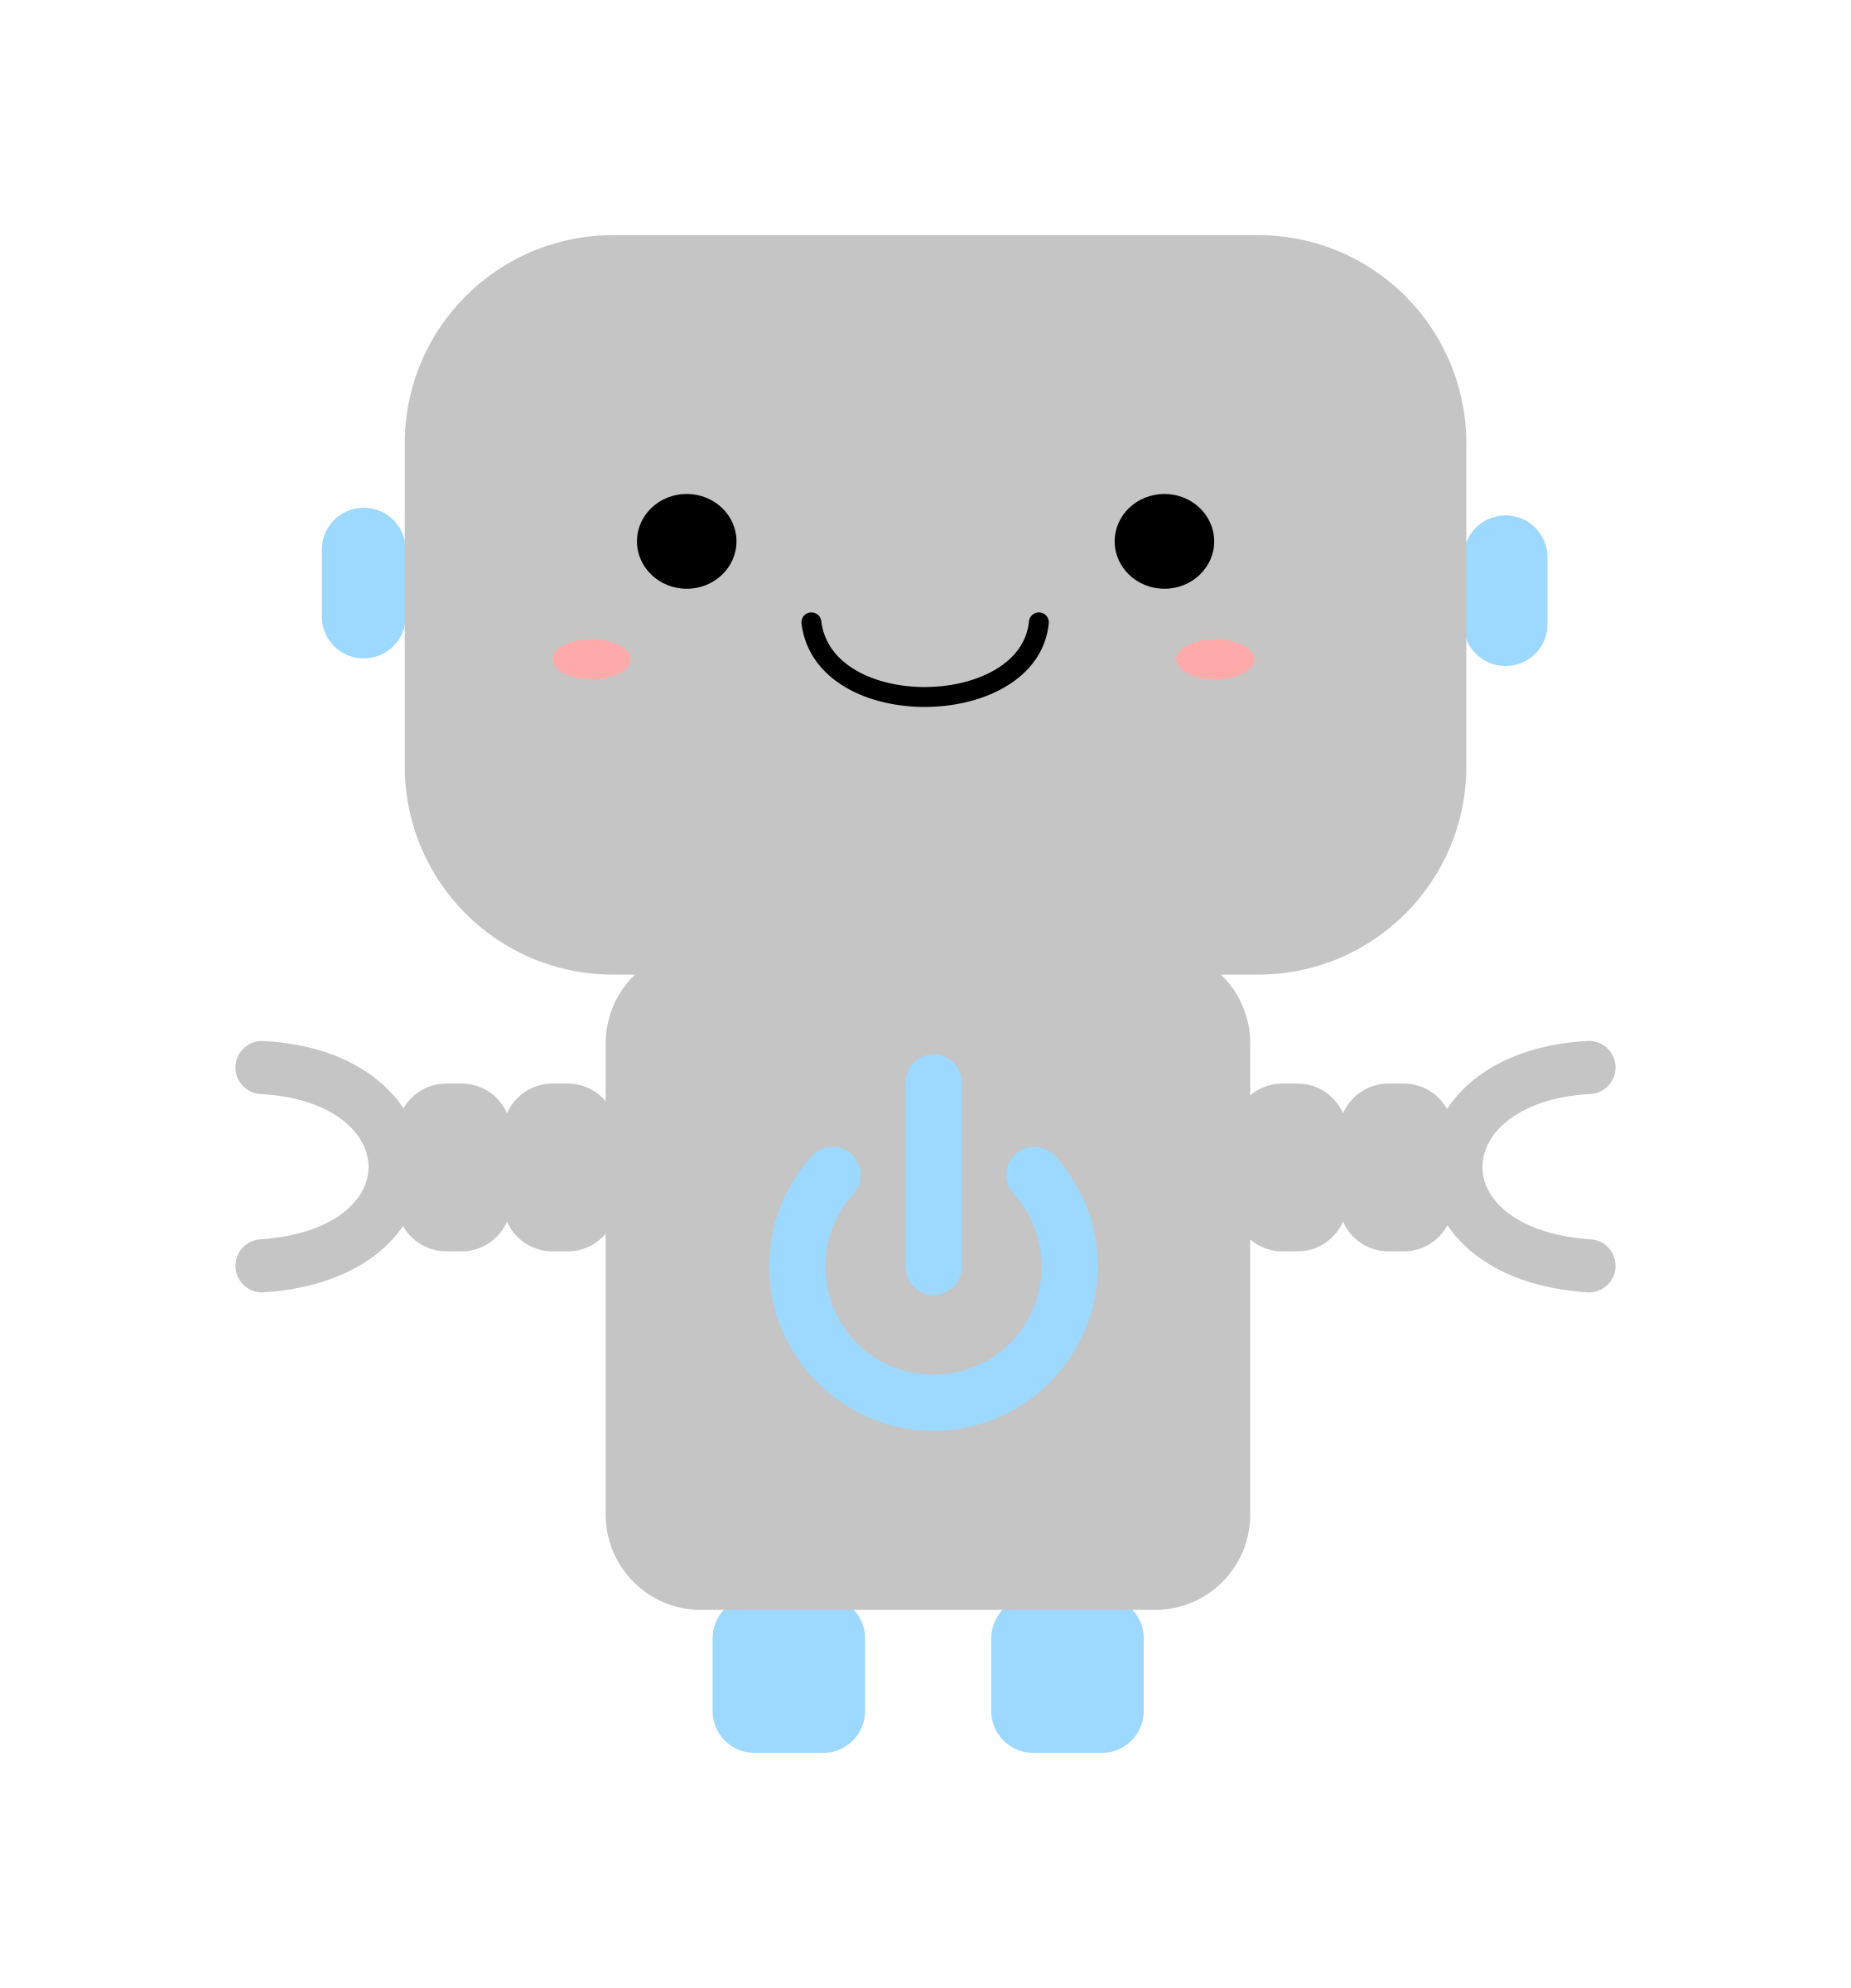 Kawaii Robot with Power Symbol by mvolz